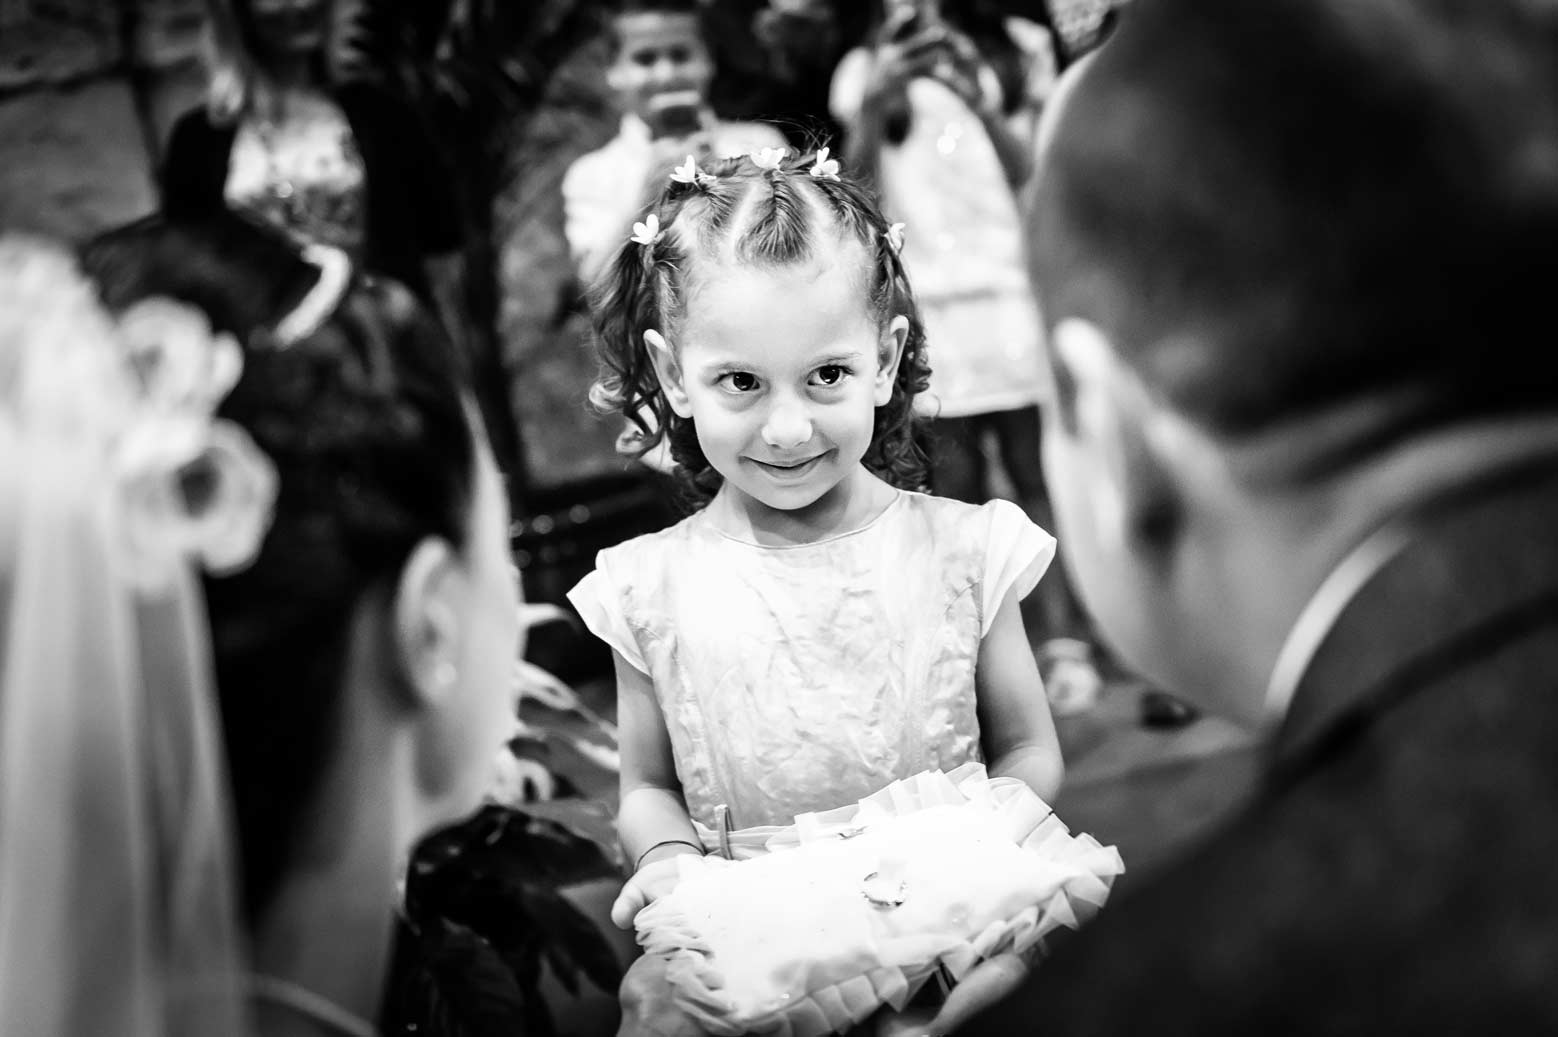 Reportage-Wedding-Photography-in-Italy-2-Ceremony